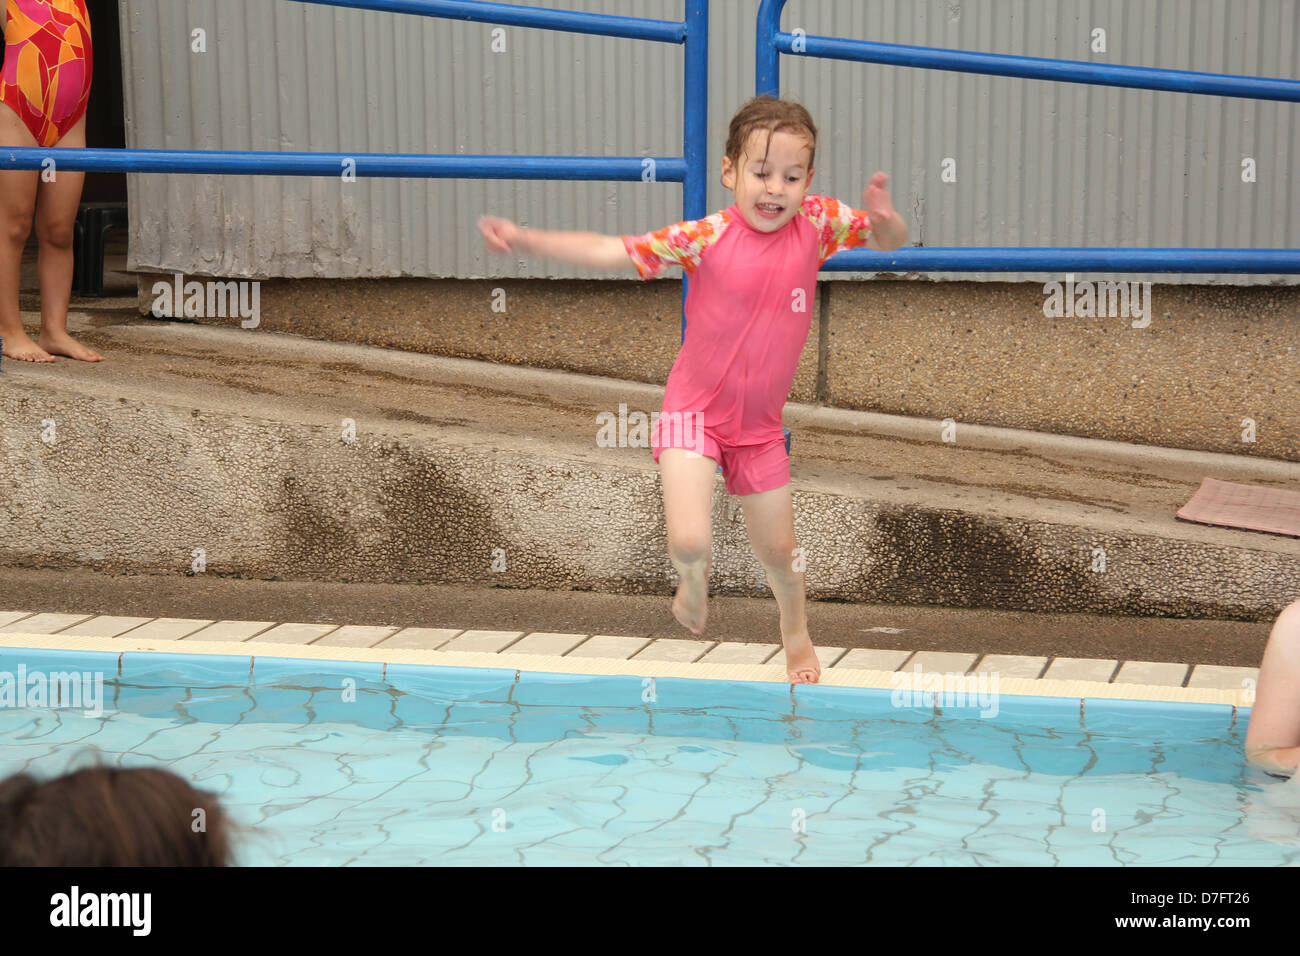 Child jumps into water during Hydrotherapy (hydropathy) treatment - Stock Image